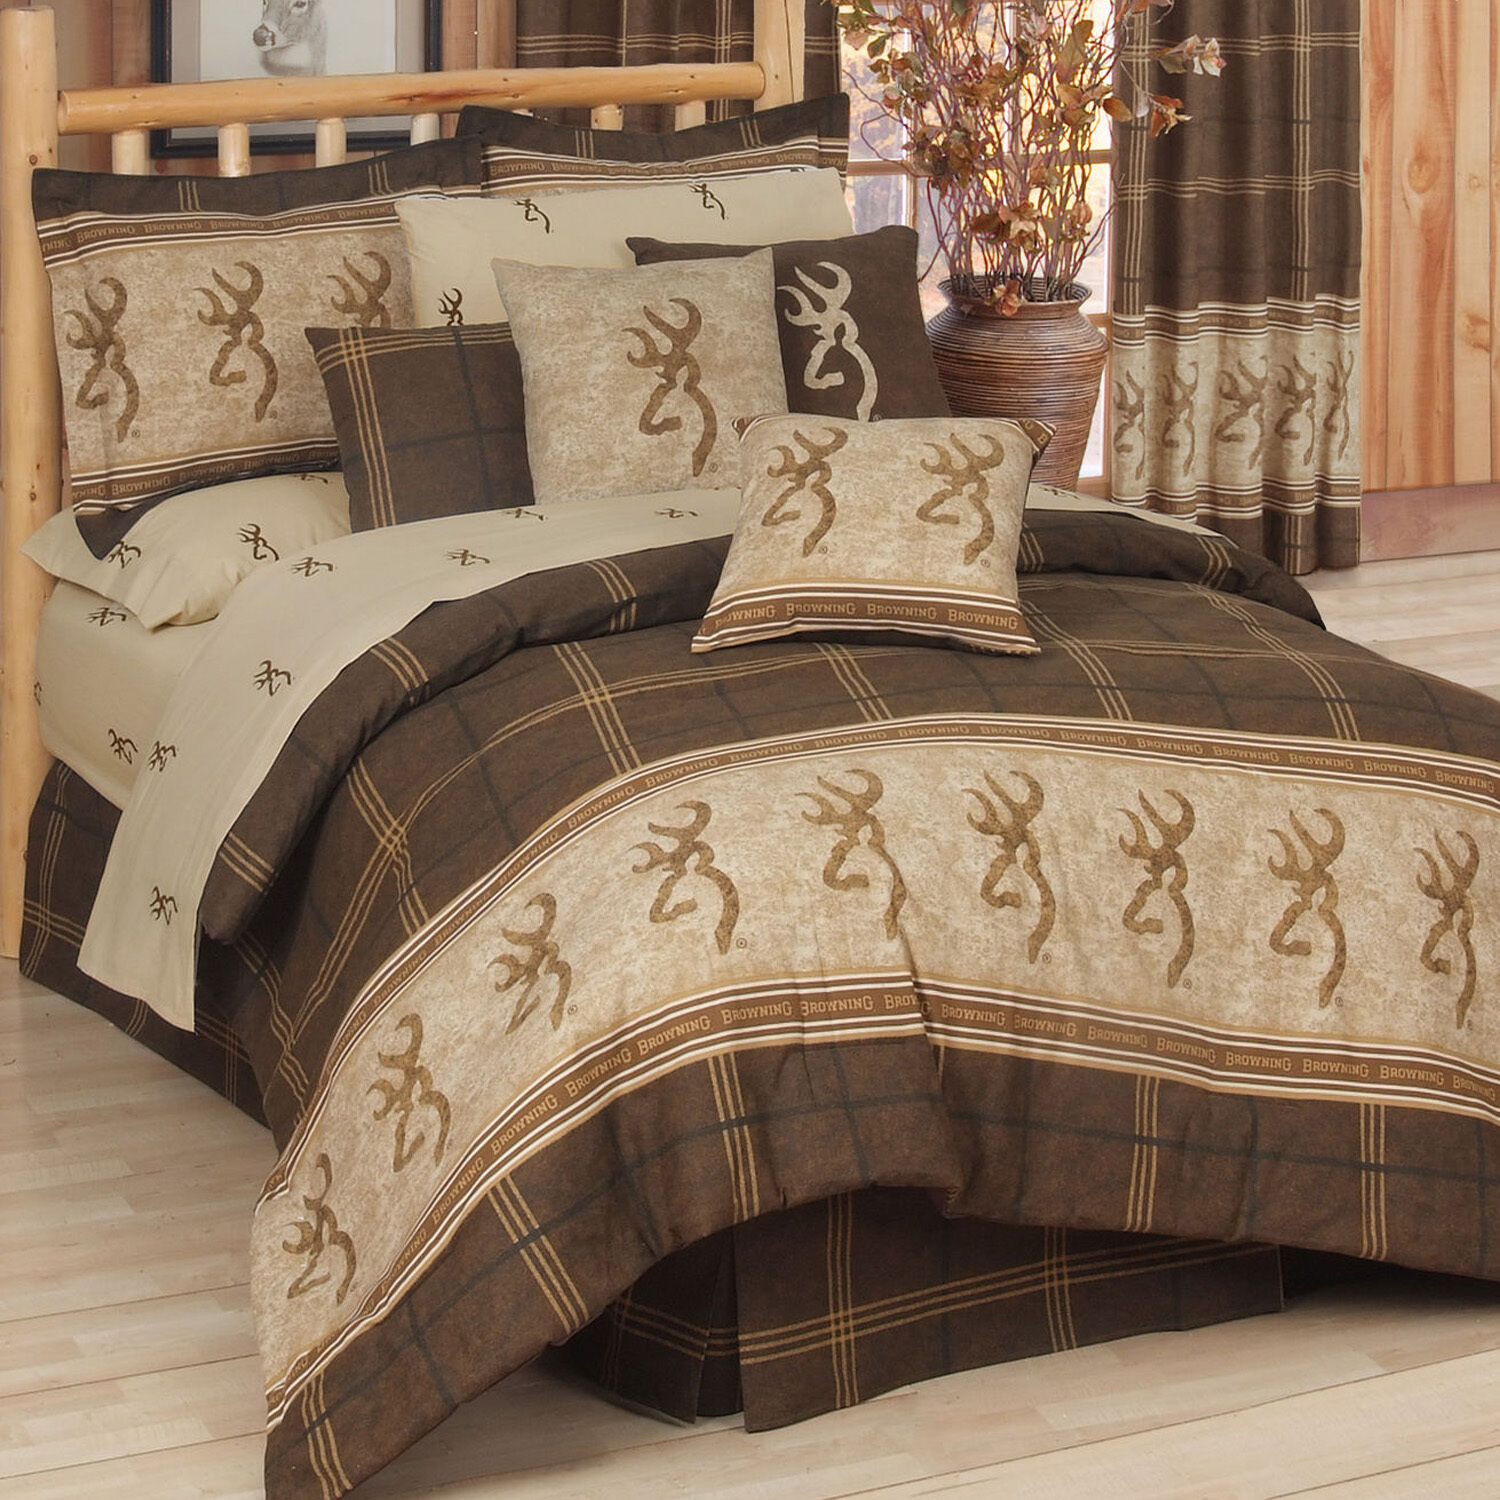 brauning Comforter Set with Sheet Option and FREE SHIPPING